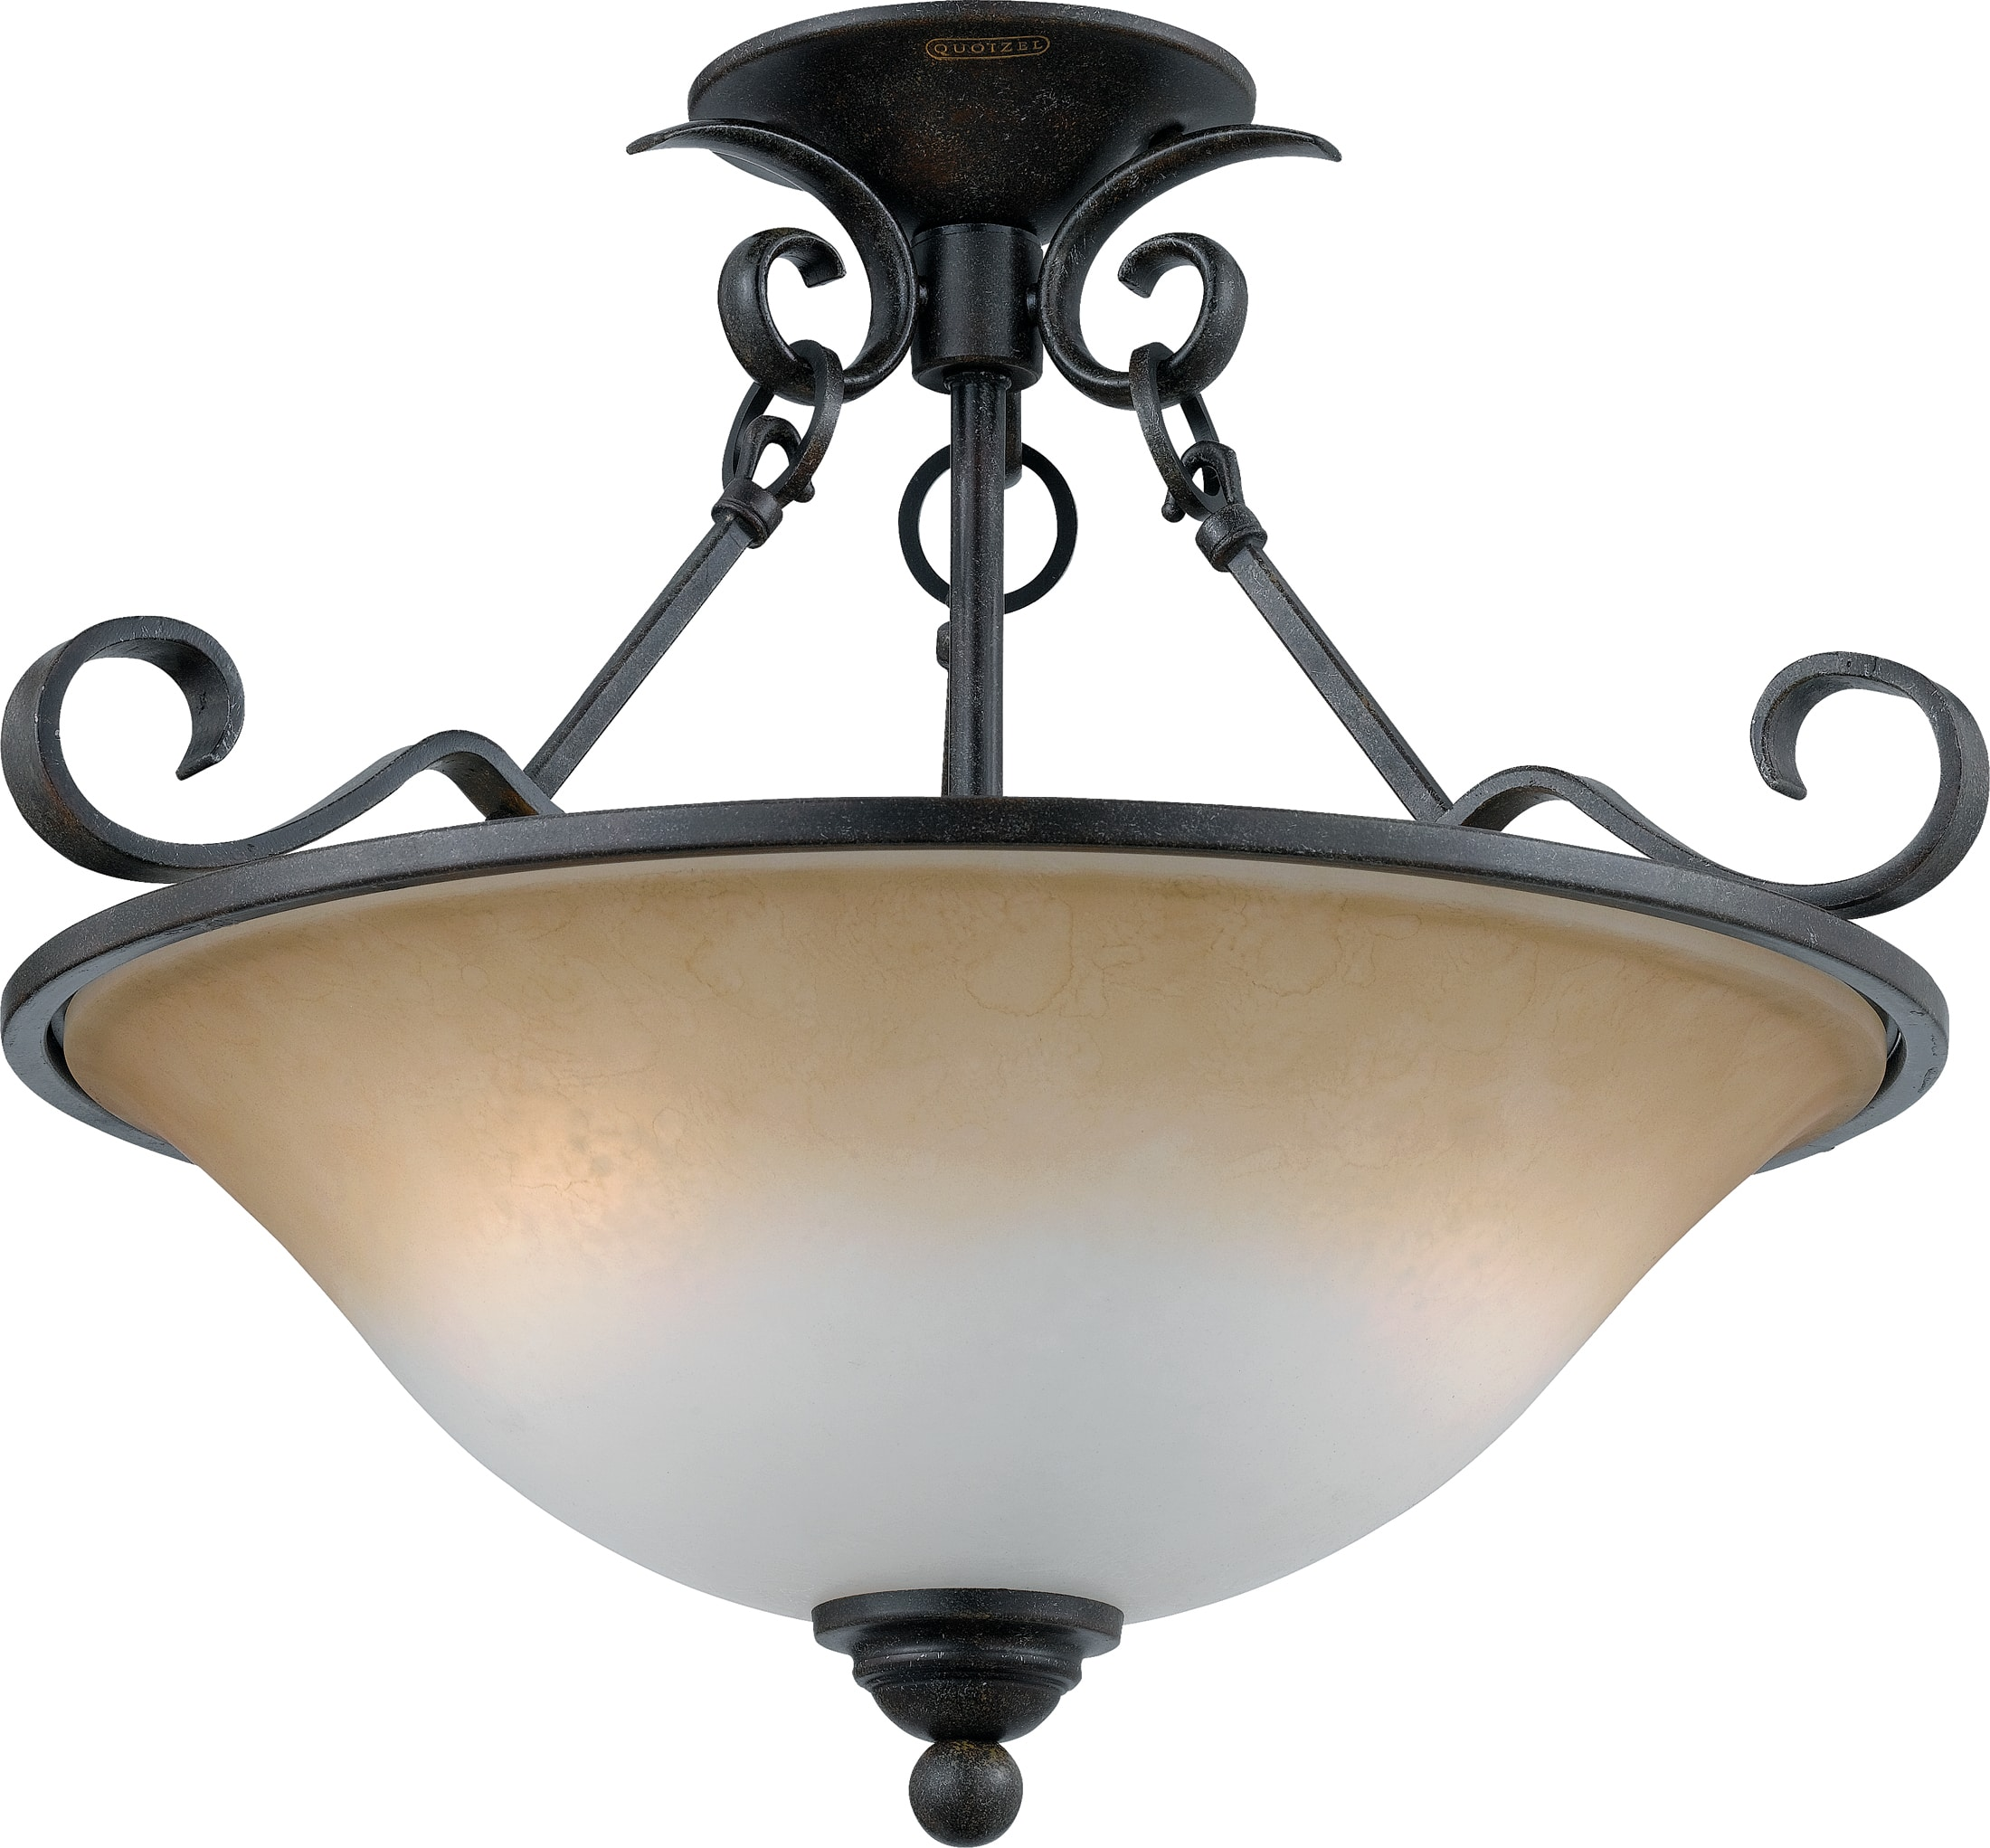 Quoizel Ceiling Fixtures Indoor Lighting Jf1719